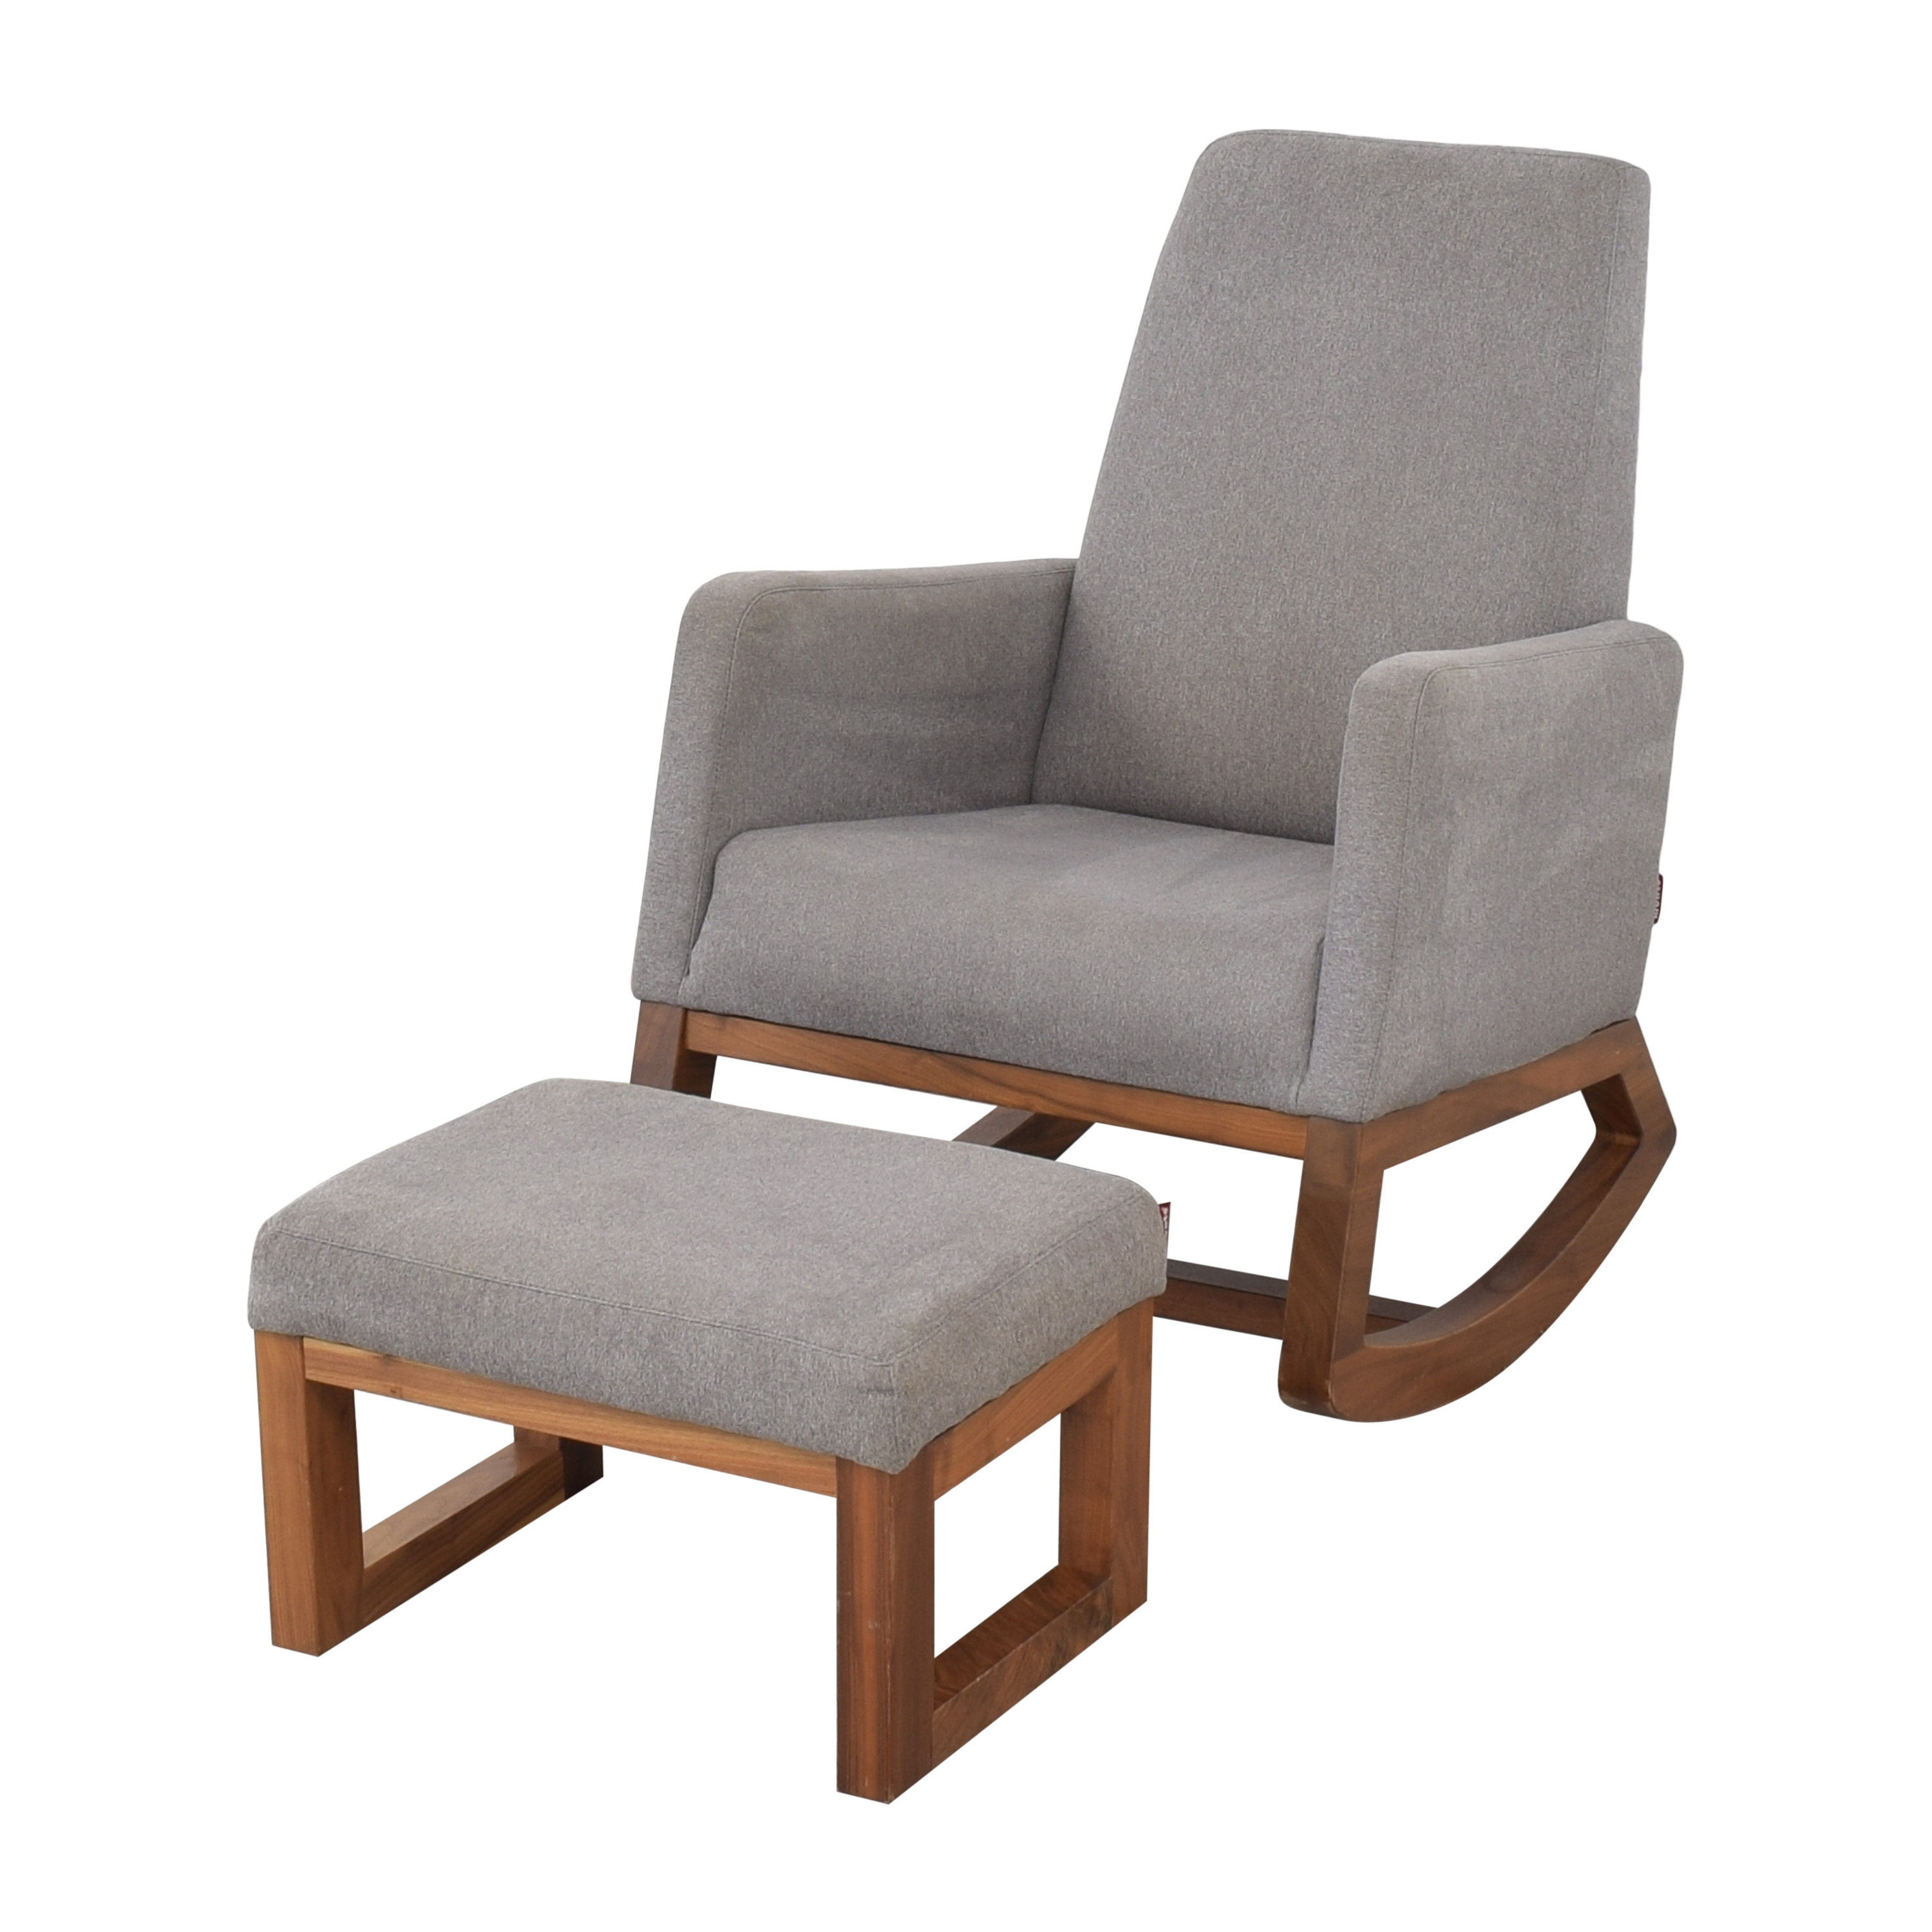 Crate & Barrel Crate & Barrel by Monte Modern Joya Rocking Chair and Ottoman